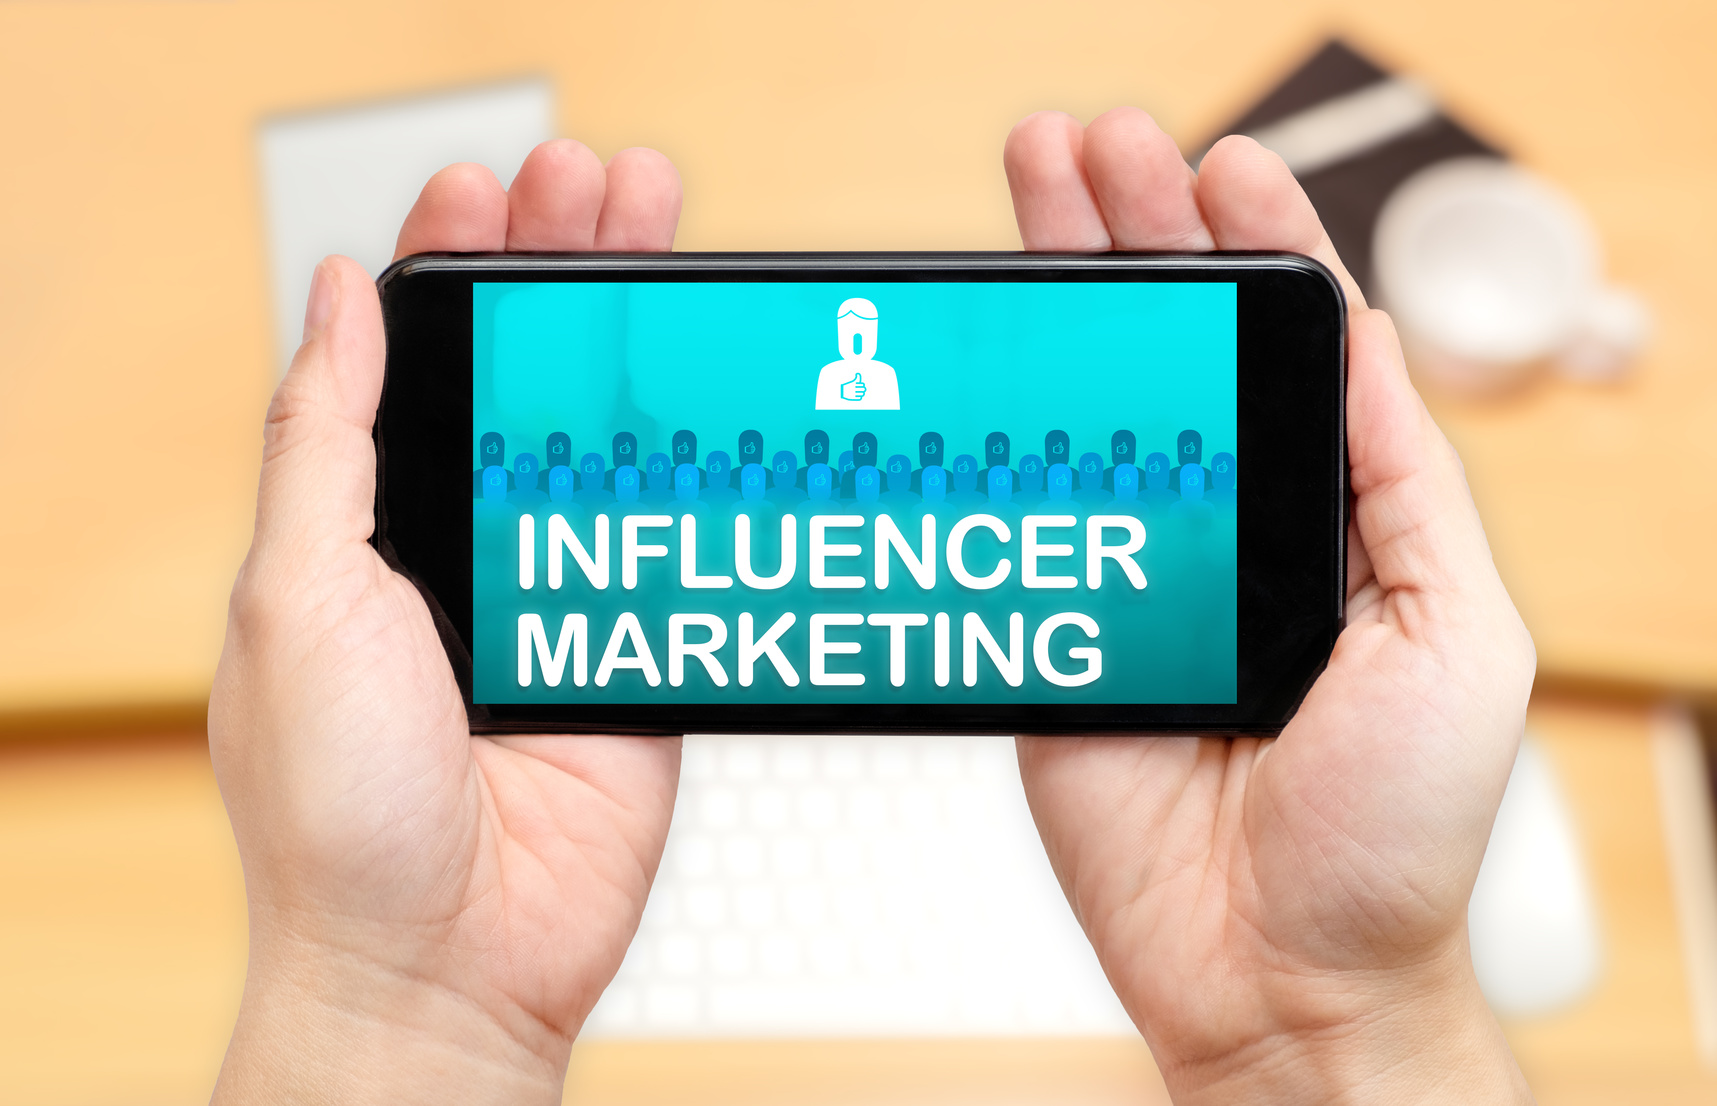 influencer marketing mistakes brands make